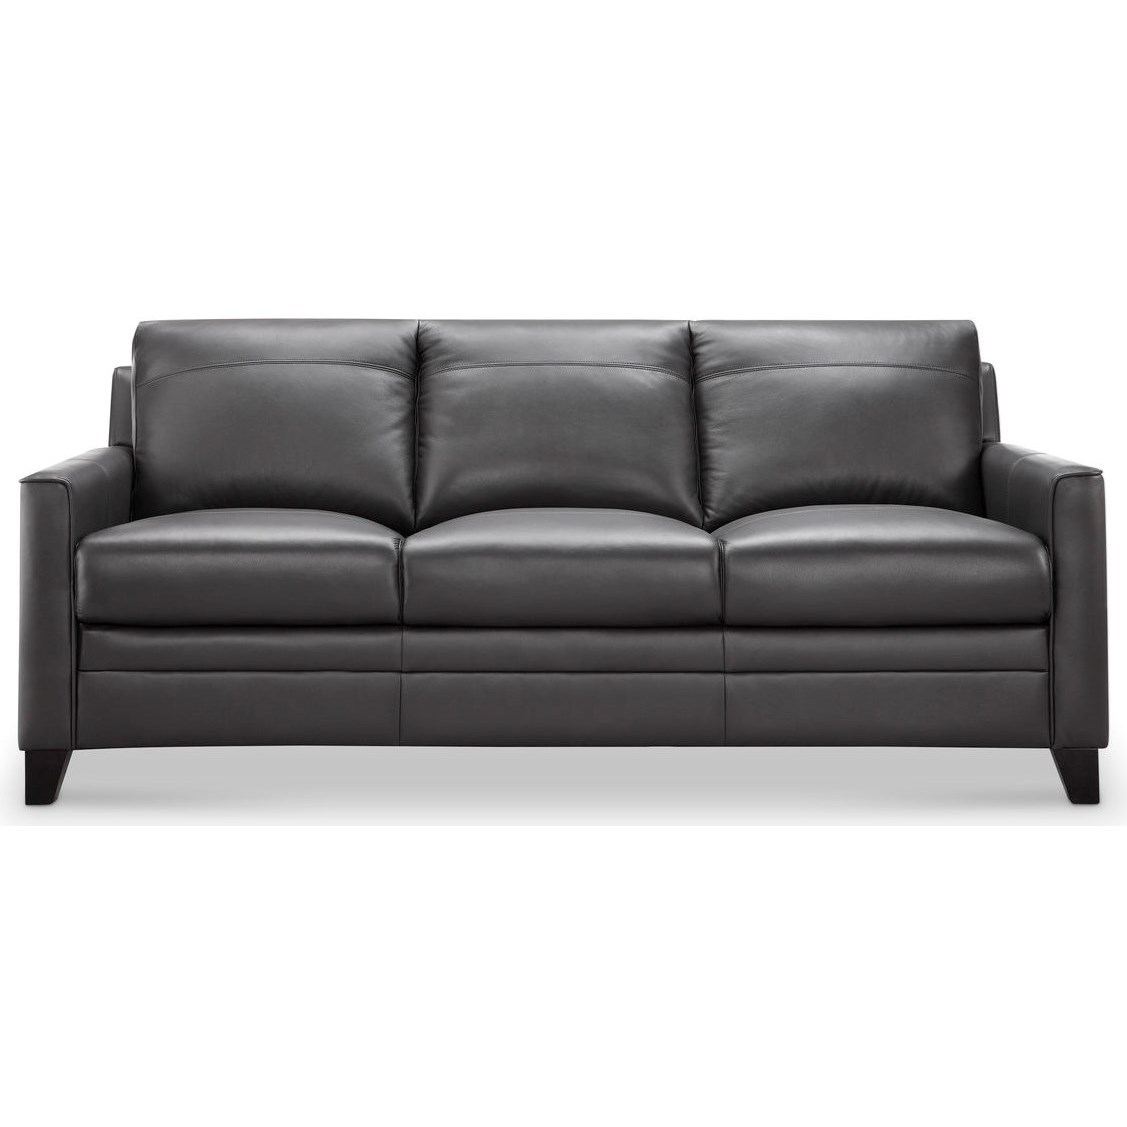 Fletcher Leather Sofa by Leather Italia USA at Home Furnishings Direct